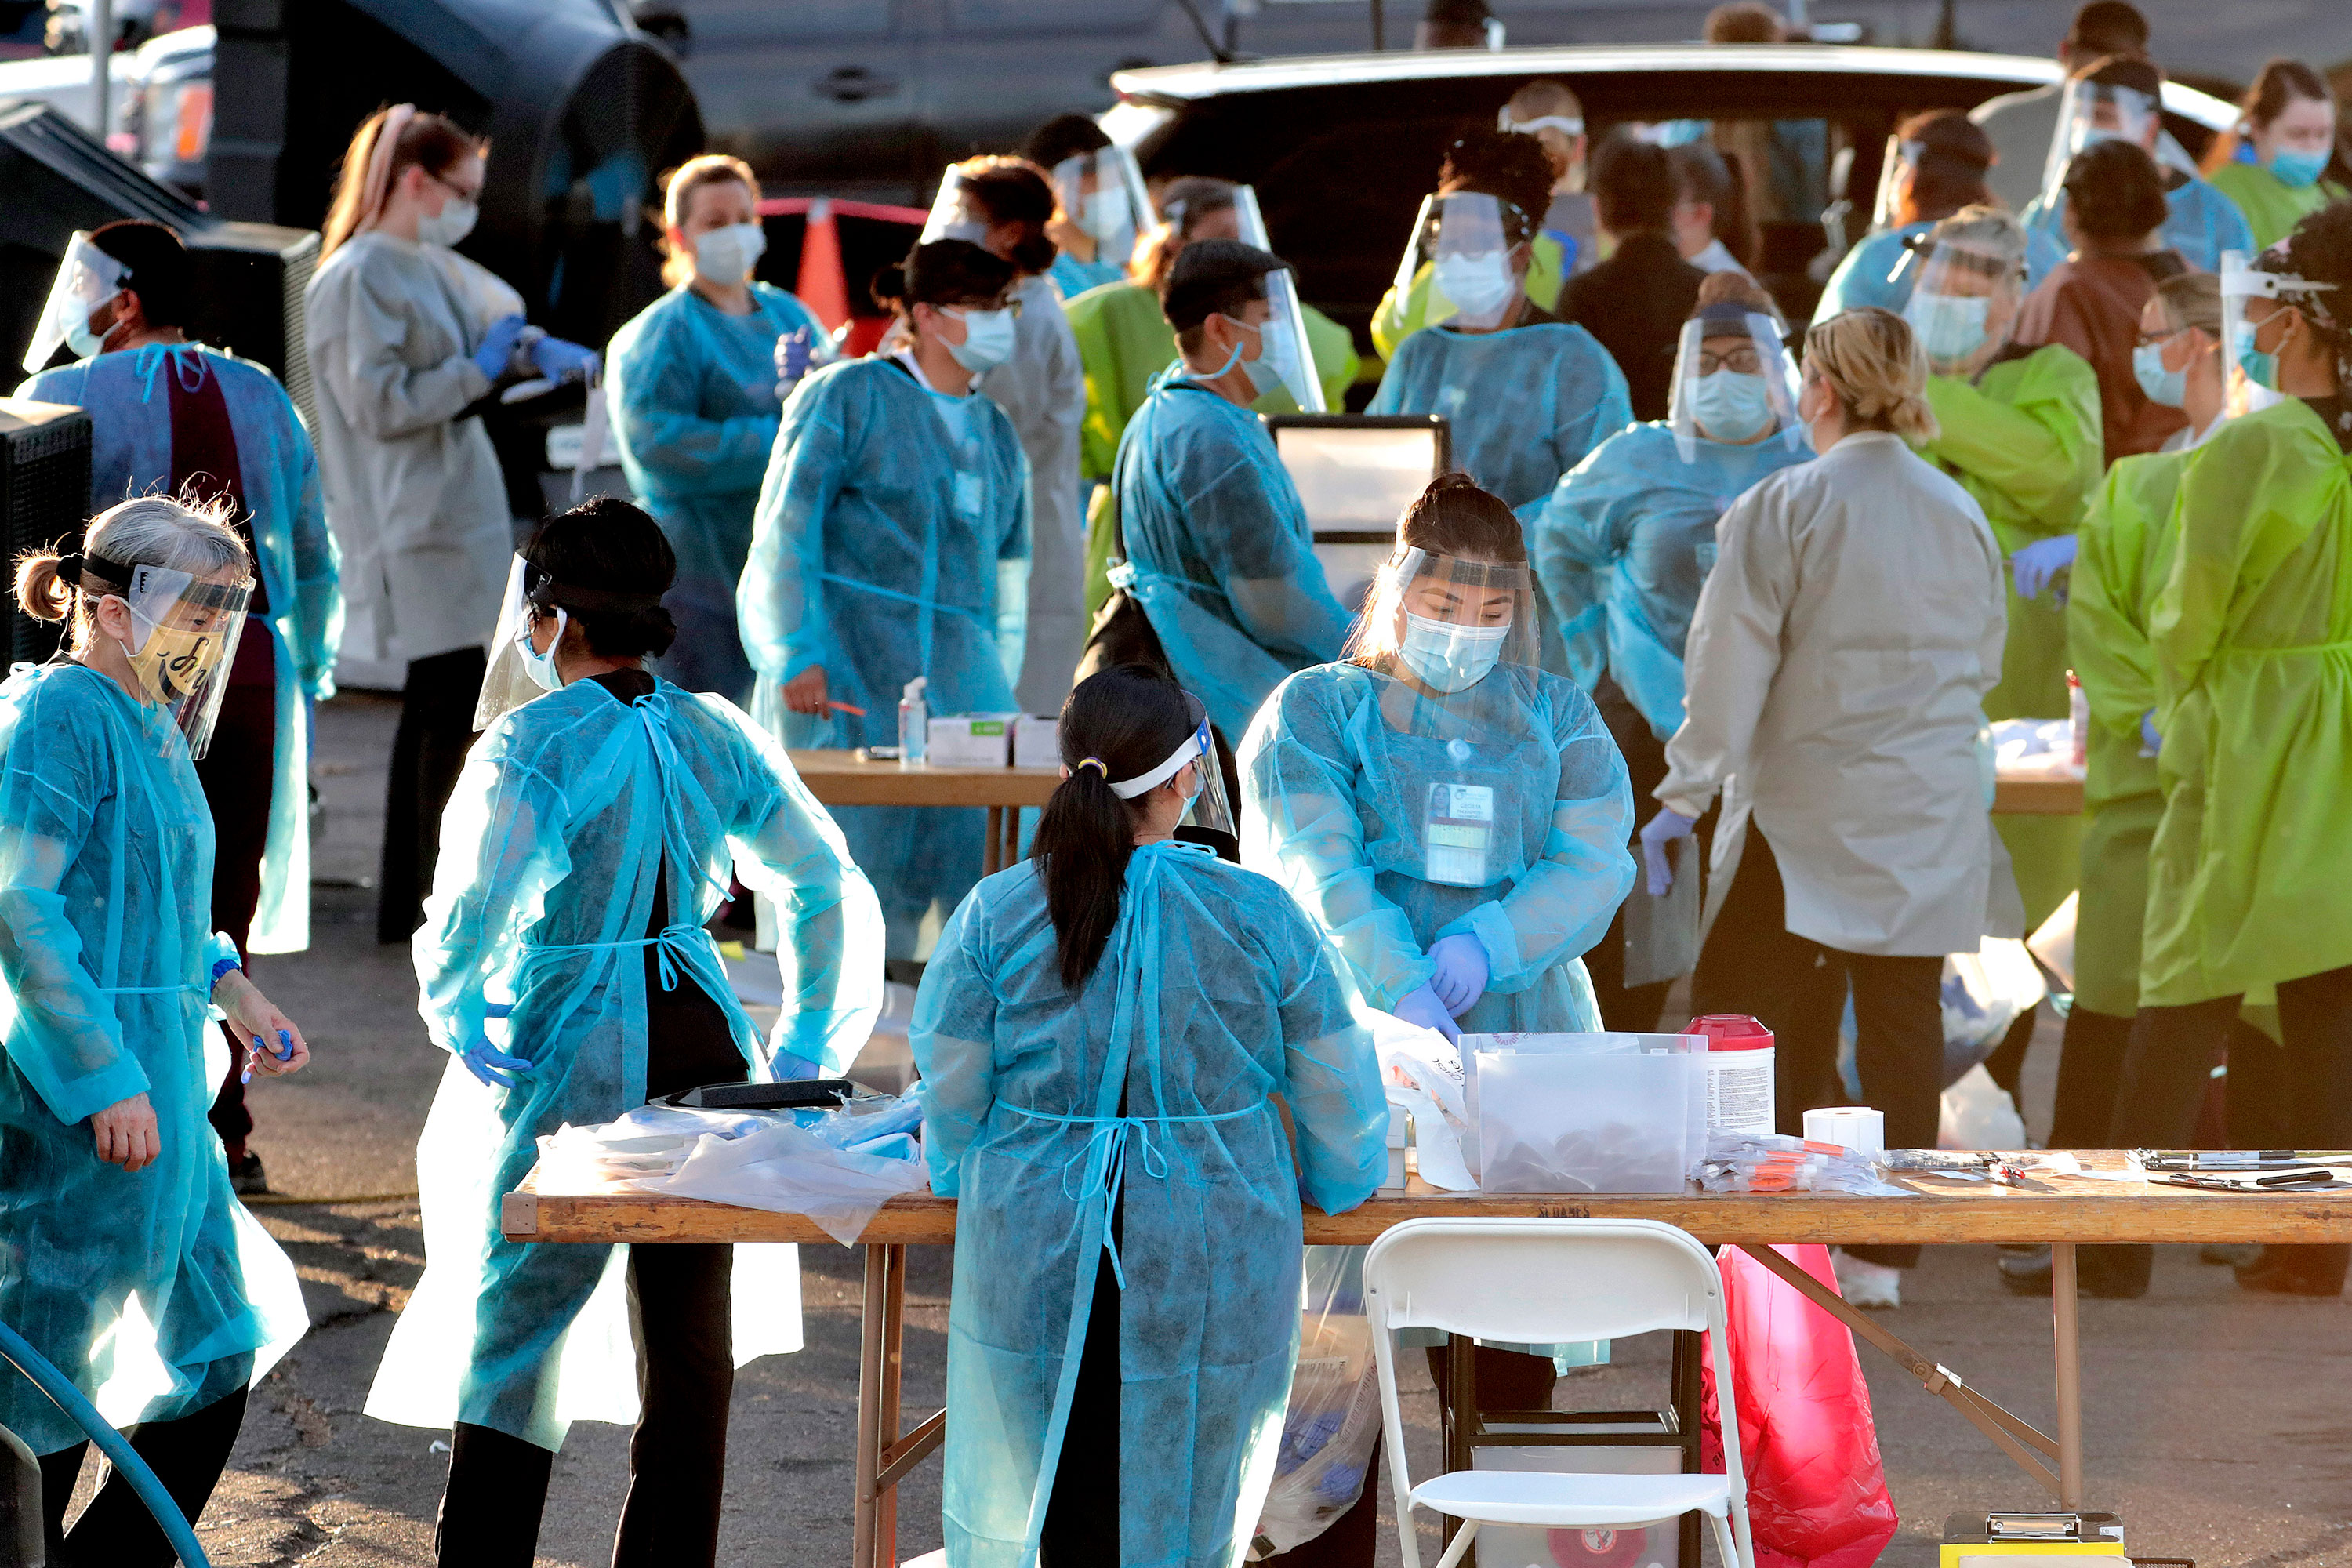 Medical personnel prepare to administer hundreds of coronavirus tests on June 27 in Phoenix, Arizona.